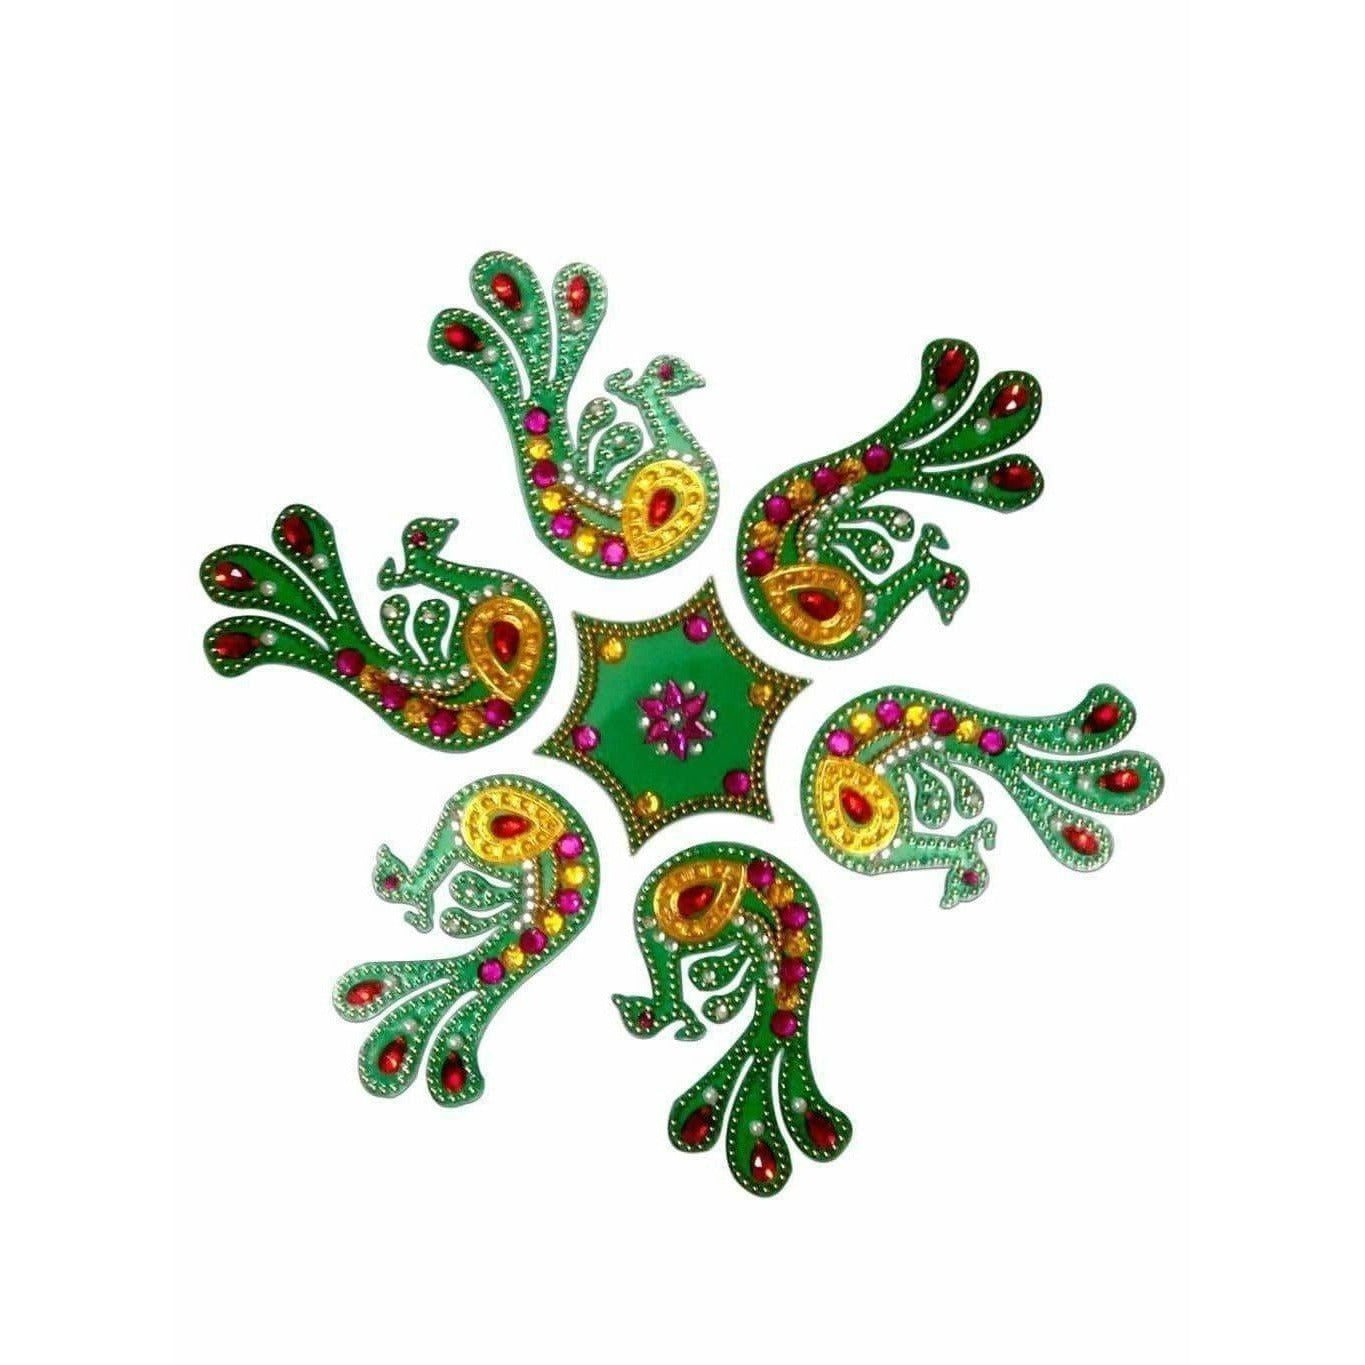 Beautiful peacock Shaped Kundan Rangoli Design Green color For Floor Decoration and Pooja Decoration